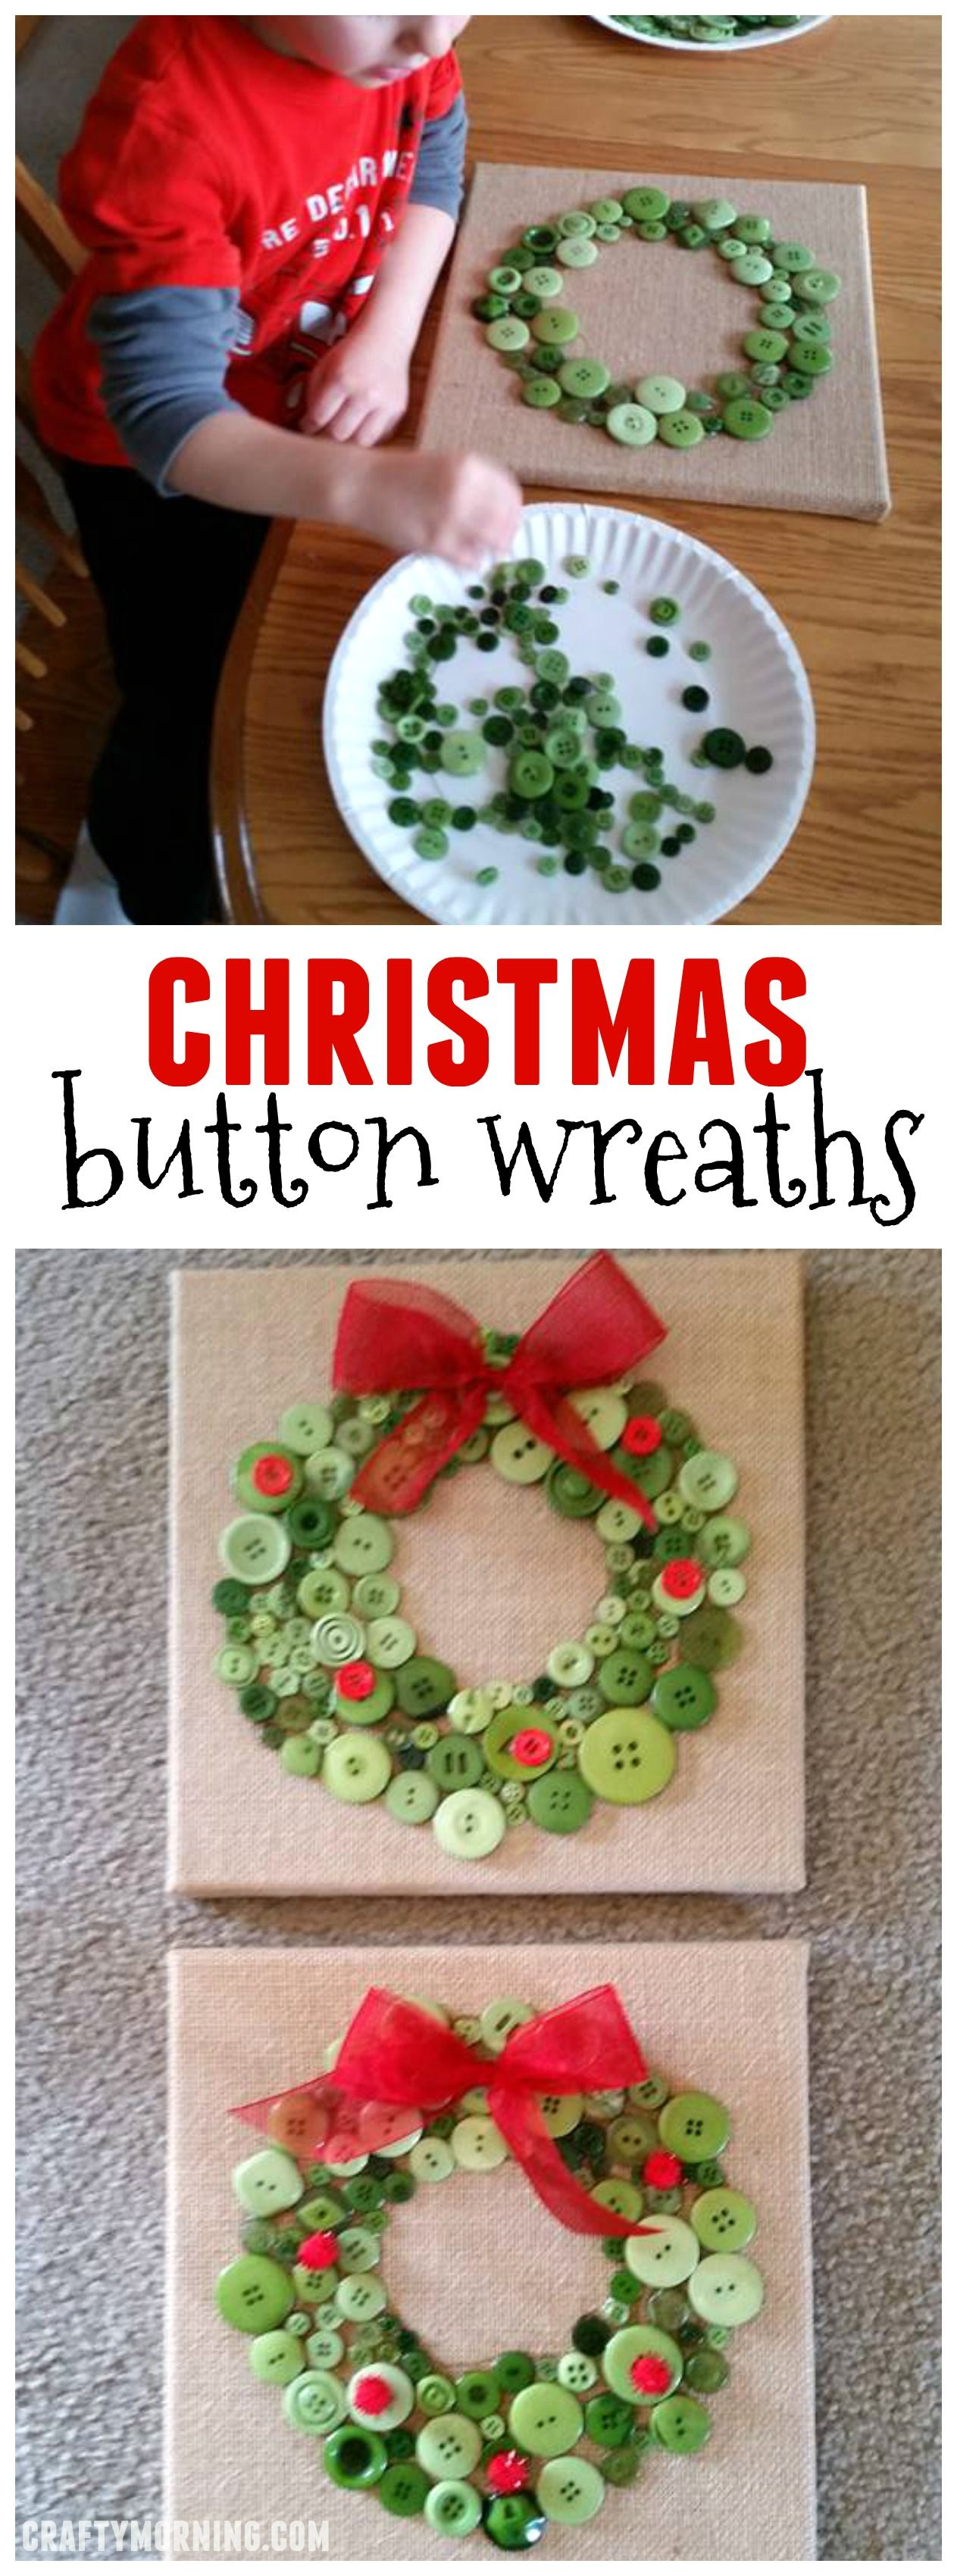 It Would Be Cute To Add Pictures Christmas Button Wreaths For A Kids Craft These Canvases Make Great Gifts